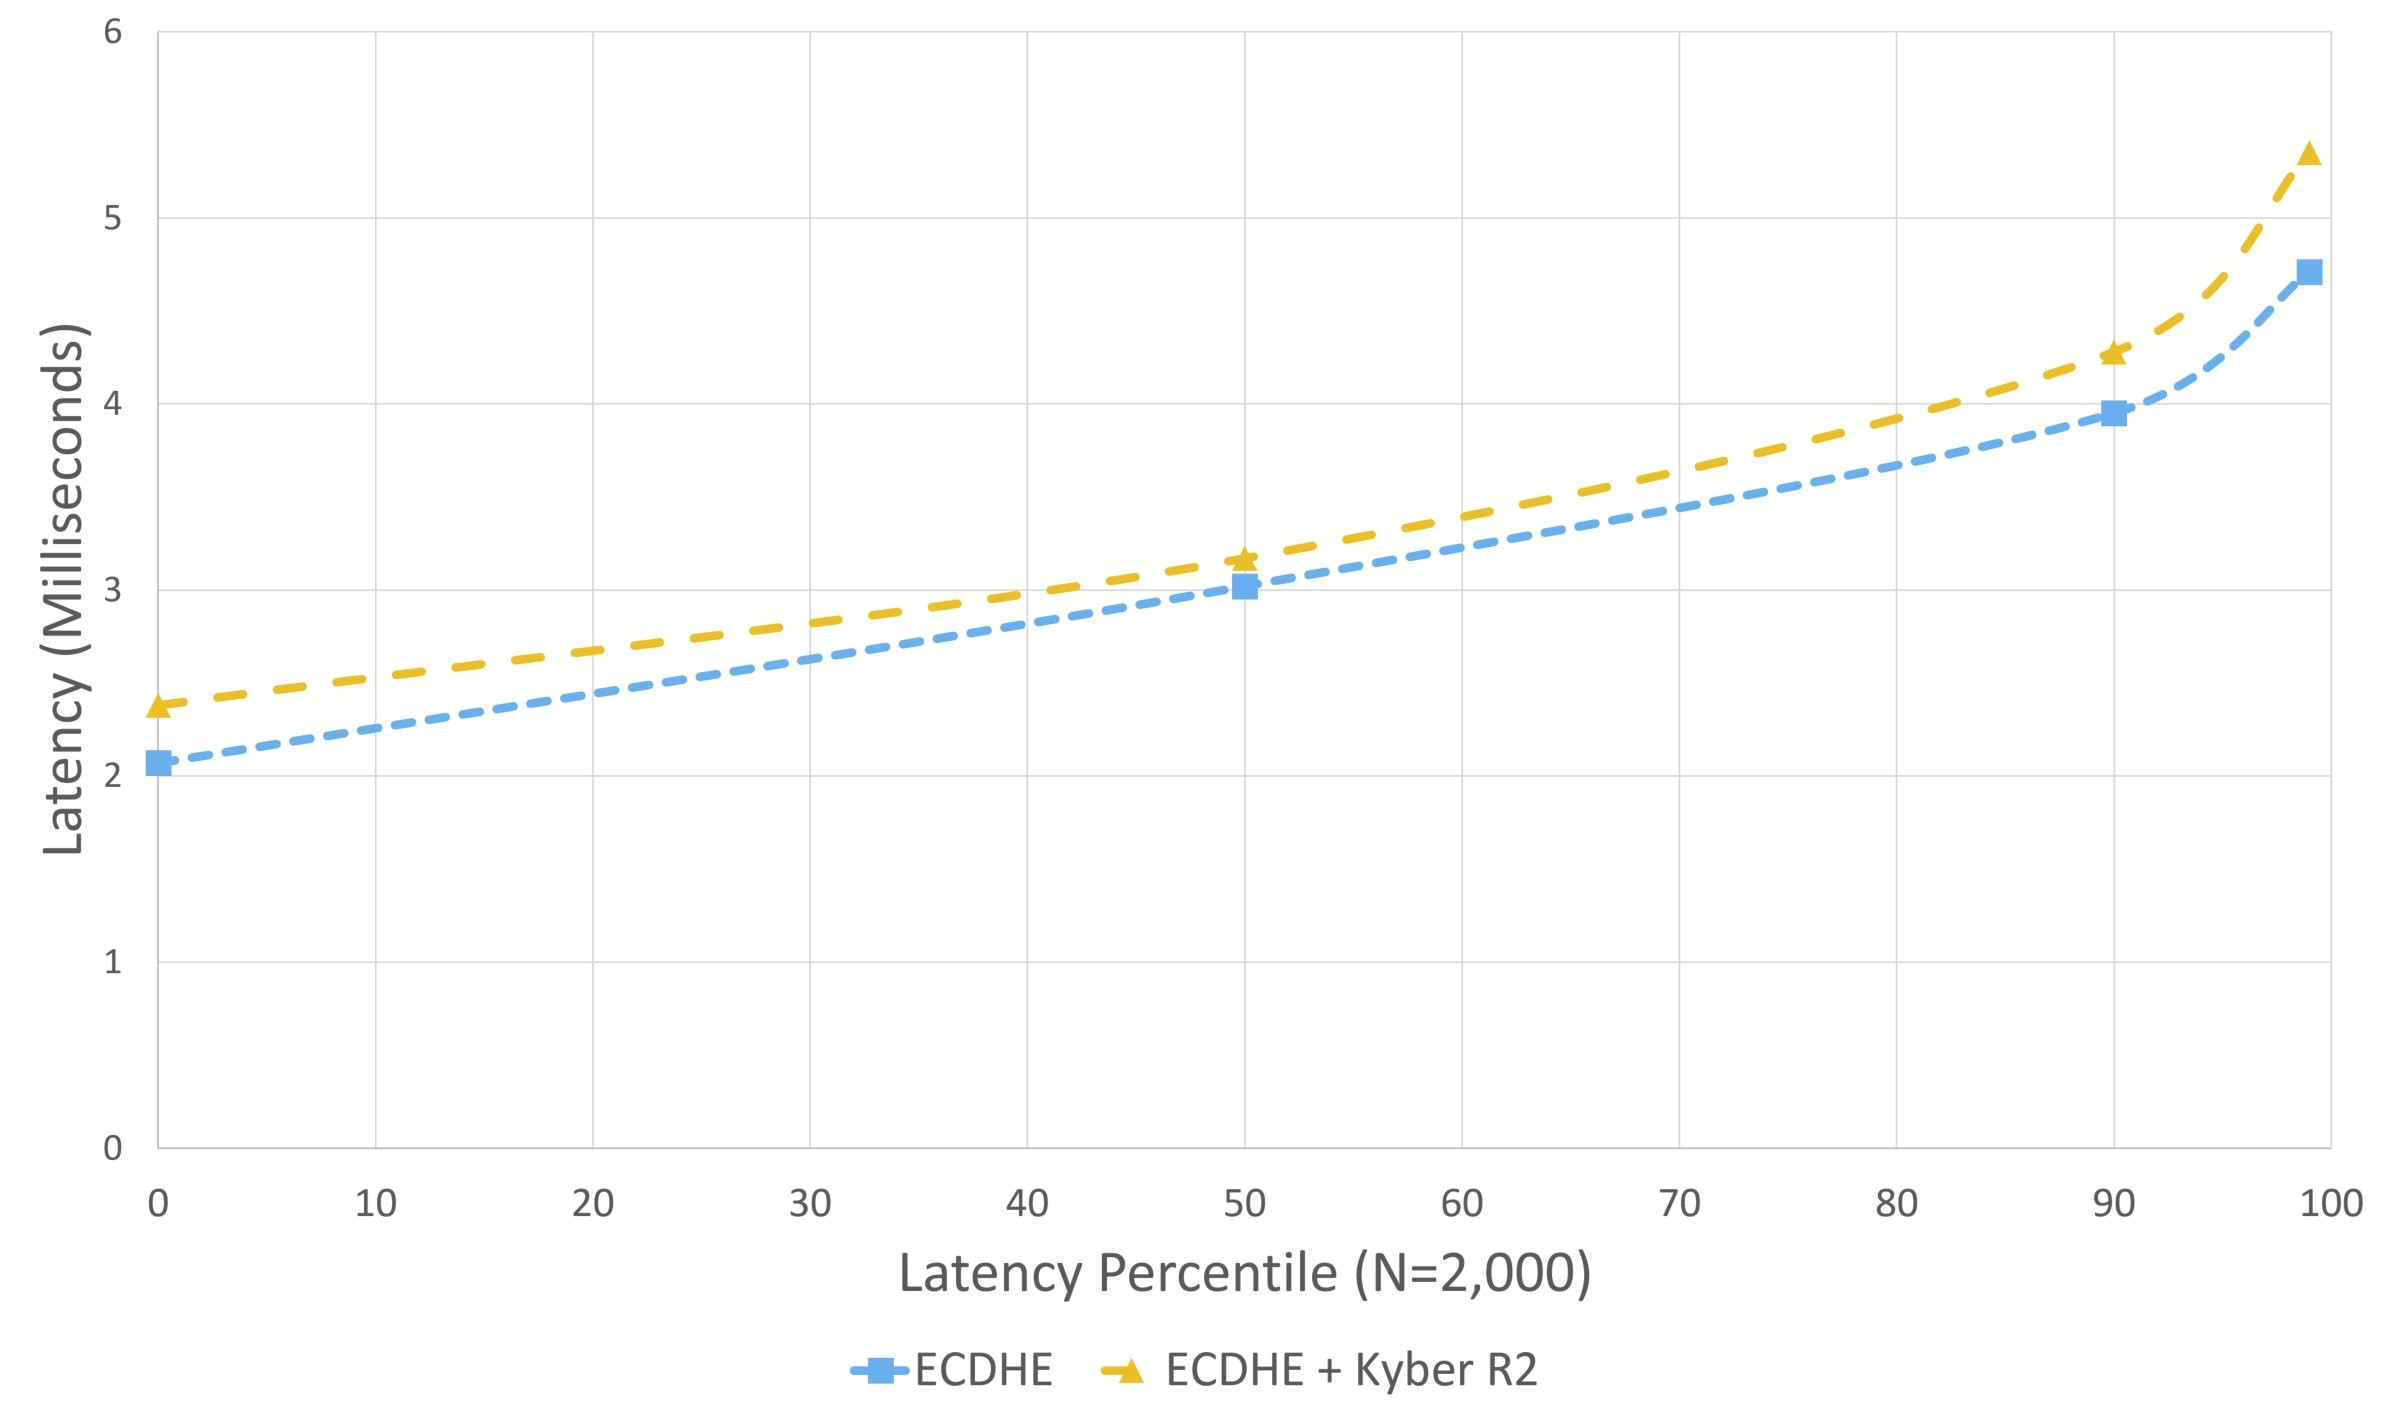 Figure 3: TLS handshake latency at varying percentiles, with only top two performing key exchange algorithms